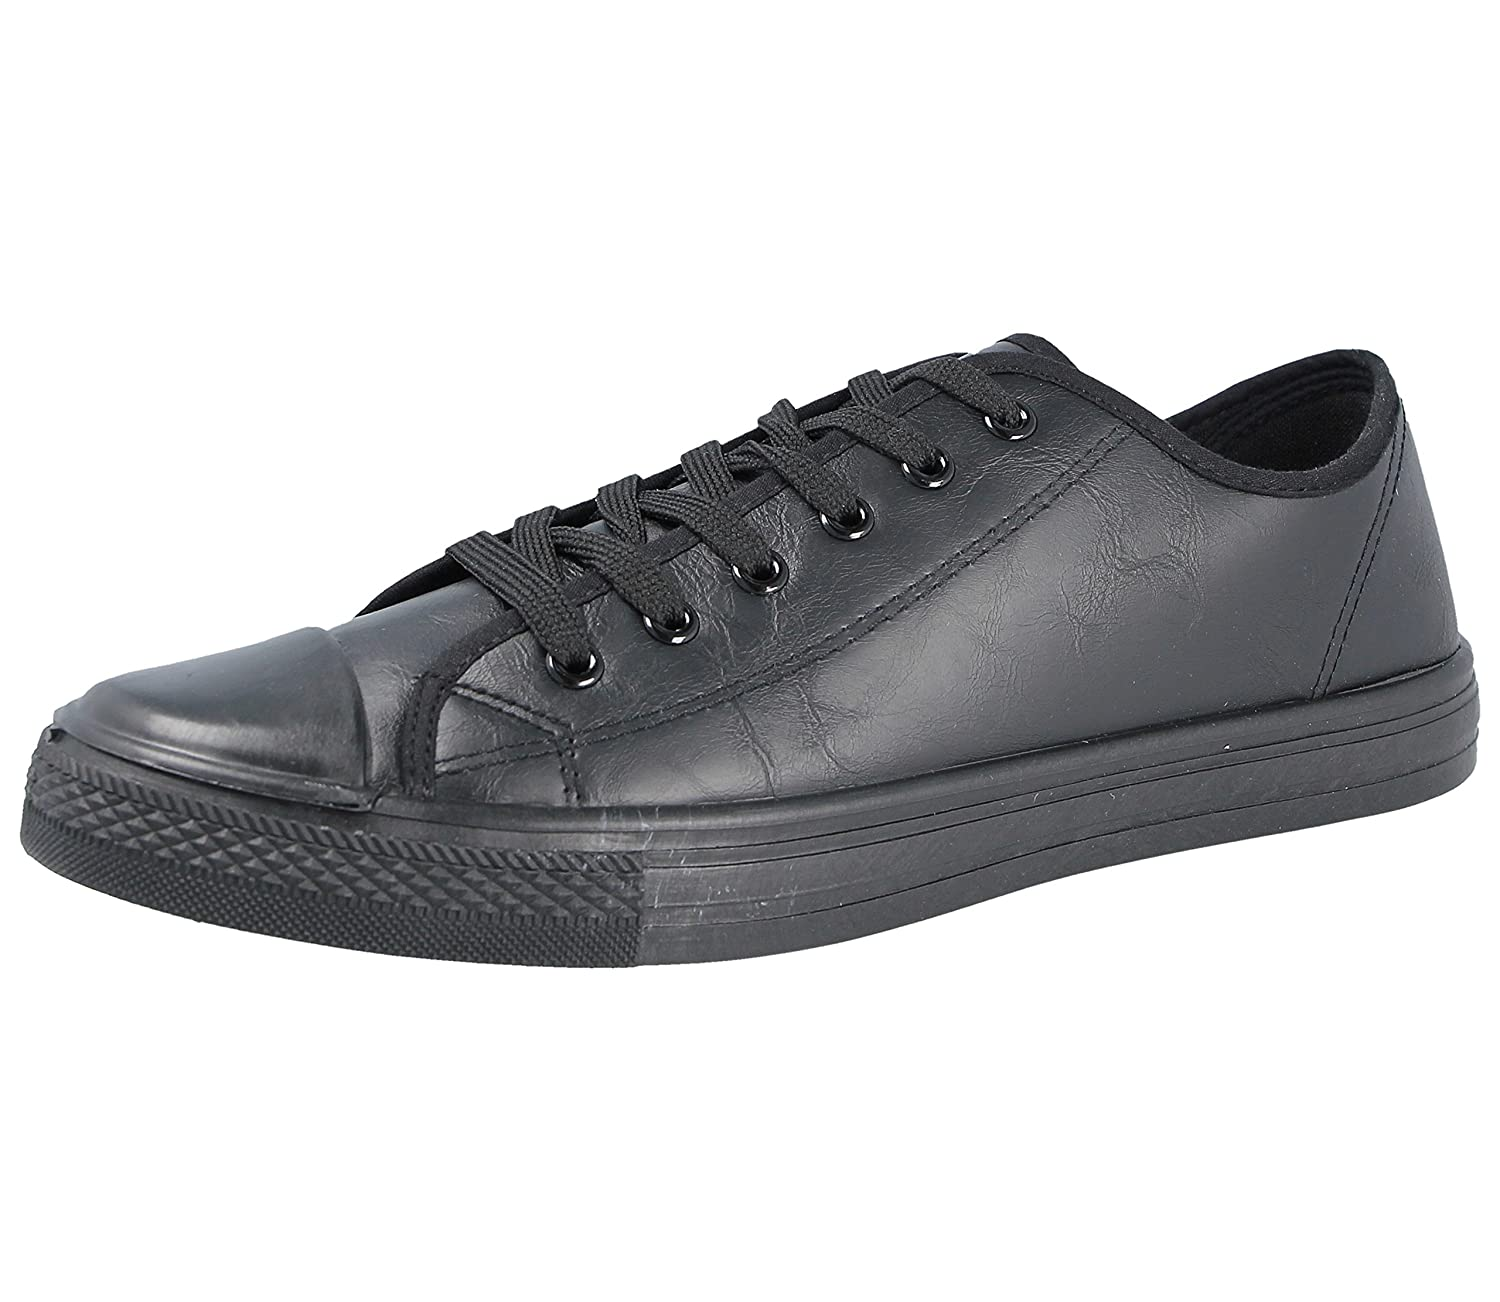 TALLA 45 EU. Mens Baltimore/Academia bajo Top Hi Top Lienzo Toe Cap Lace Up Bombas de Zapatilla Deportiva All Star Zapatillas Casual Zapatos tamaño 6 – 12